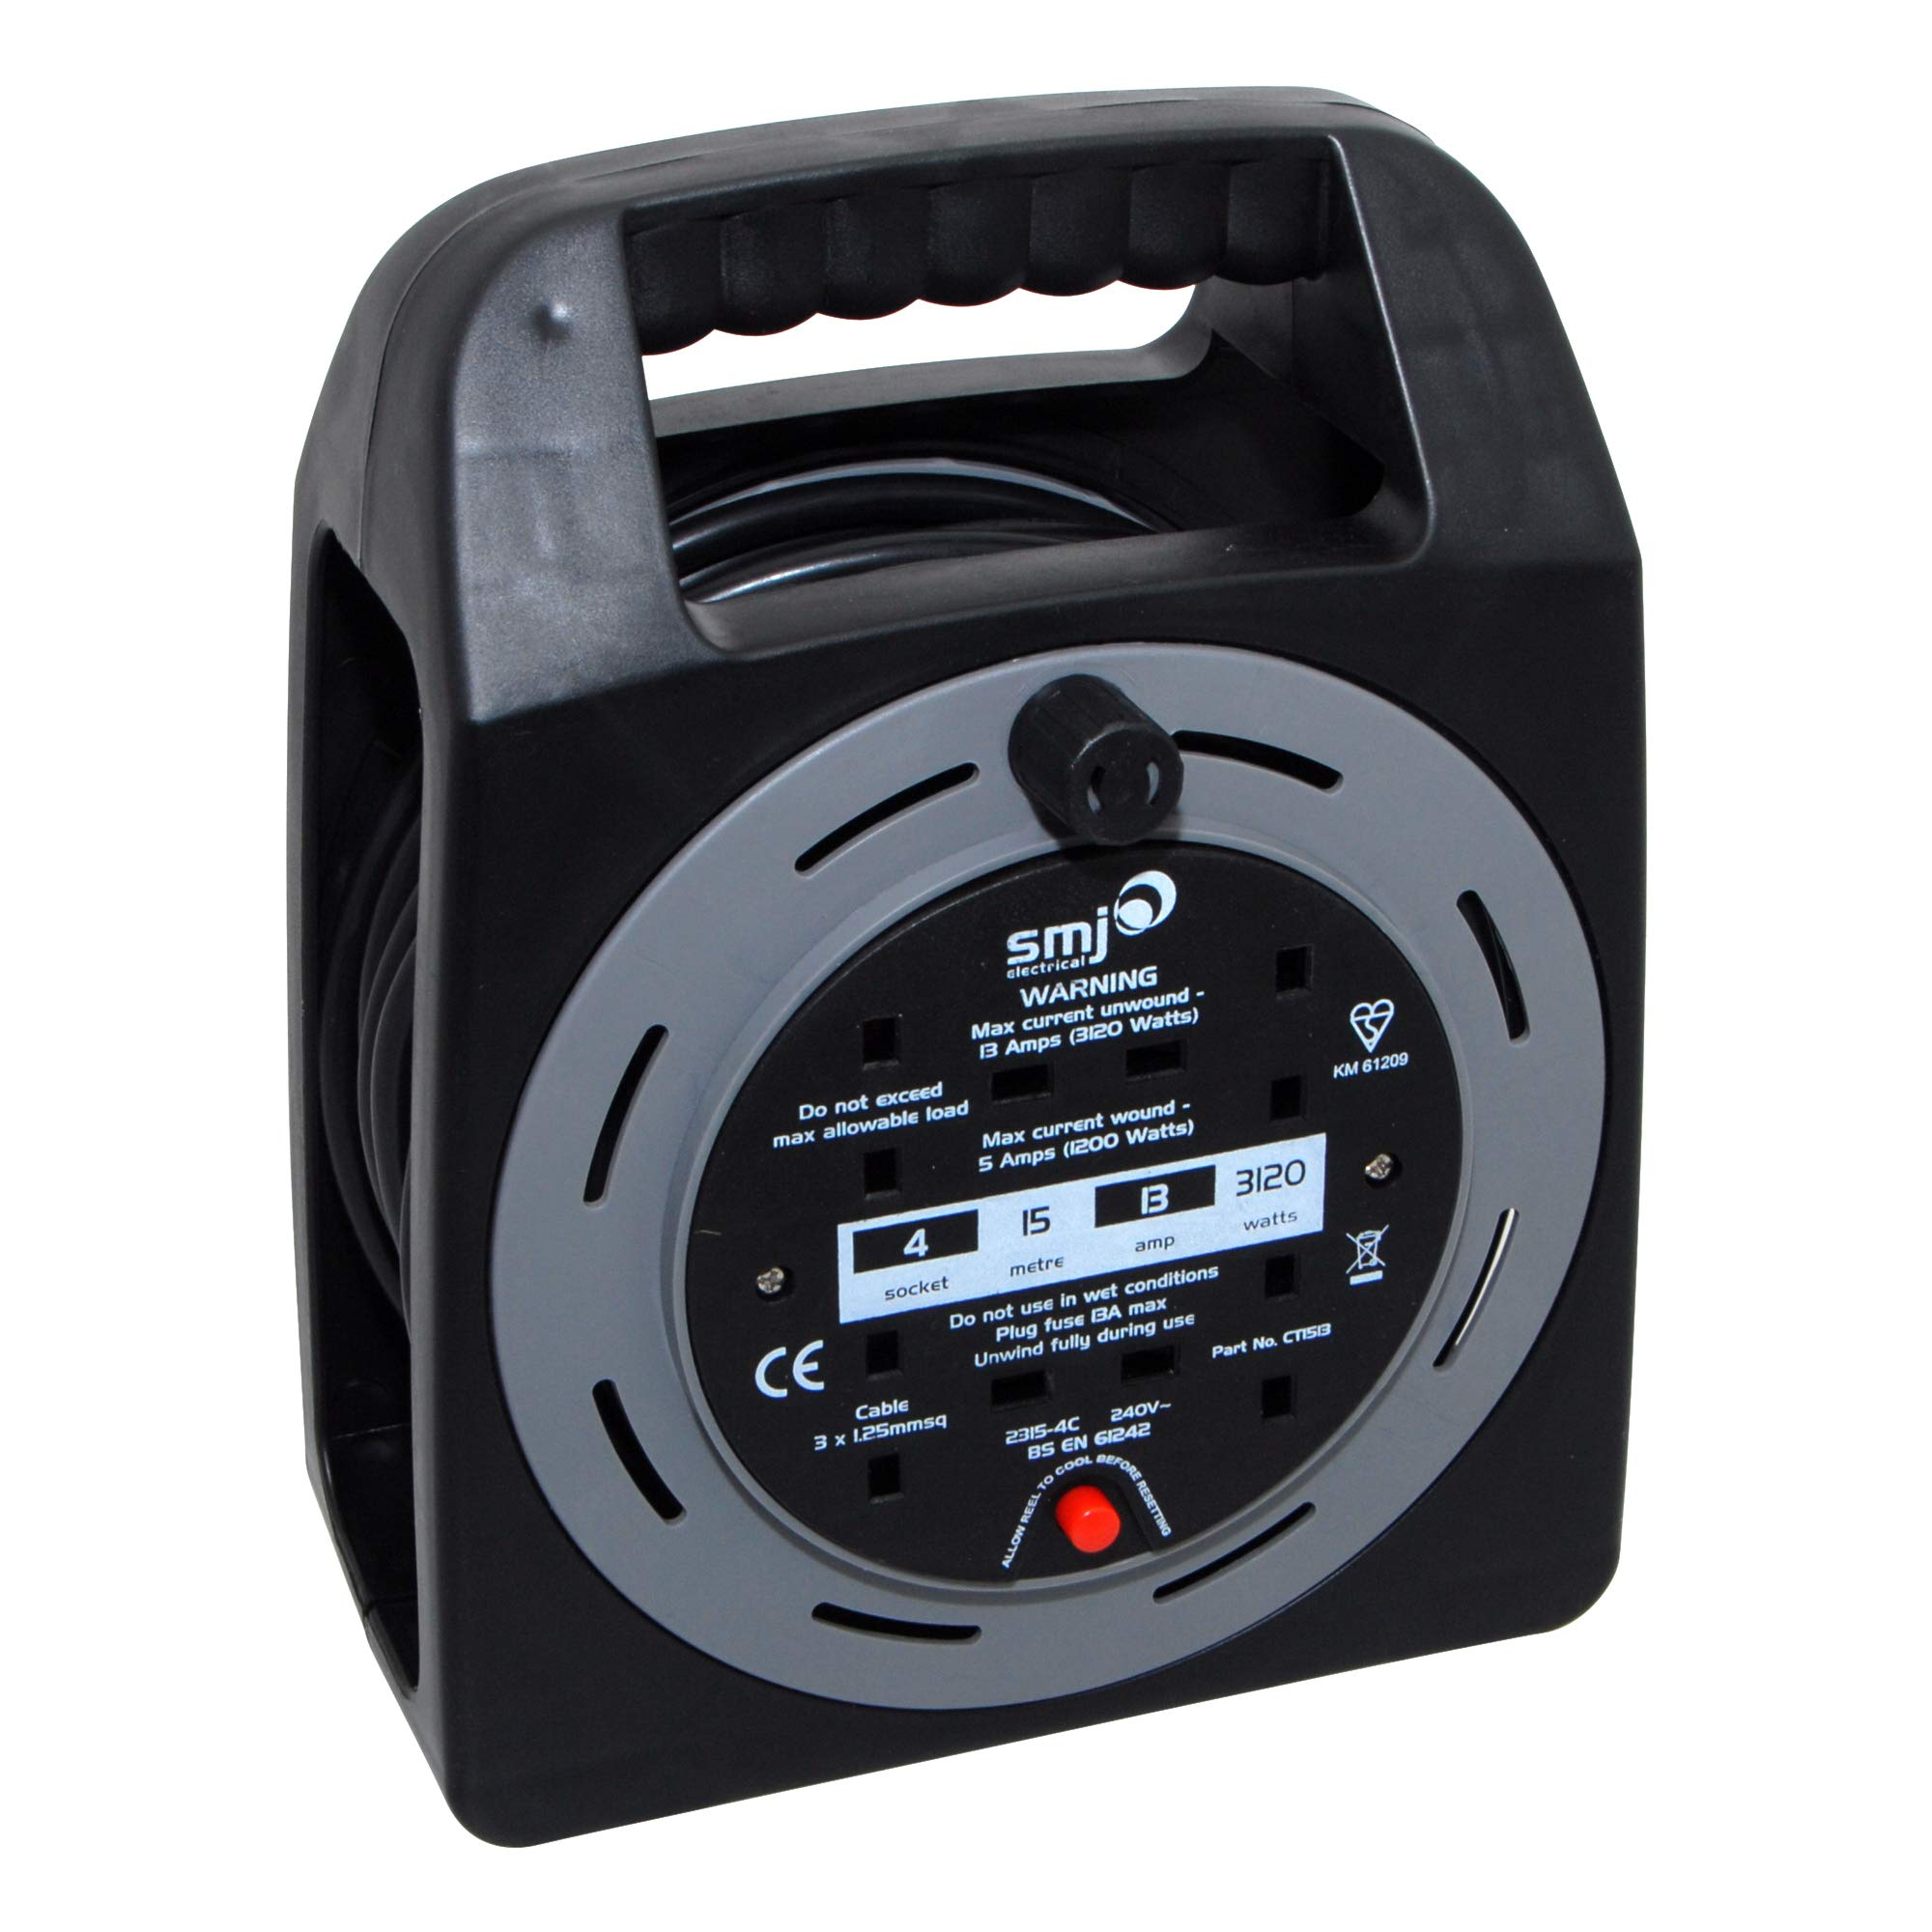 SMJ Electrical CT1513 Easy Wind 13A 4G 15 Metre Cable Reel with Thermal Cut Out, Black/Grey, Meter